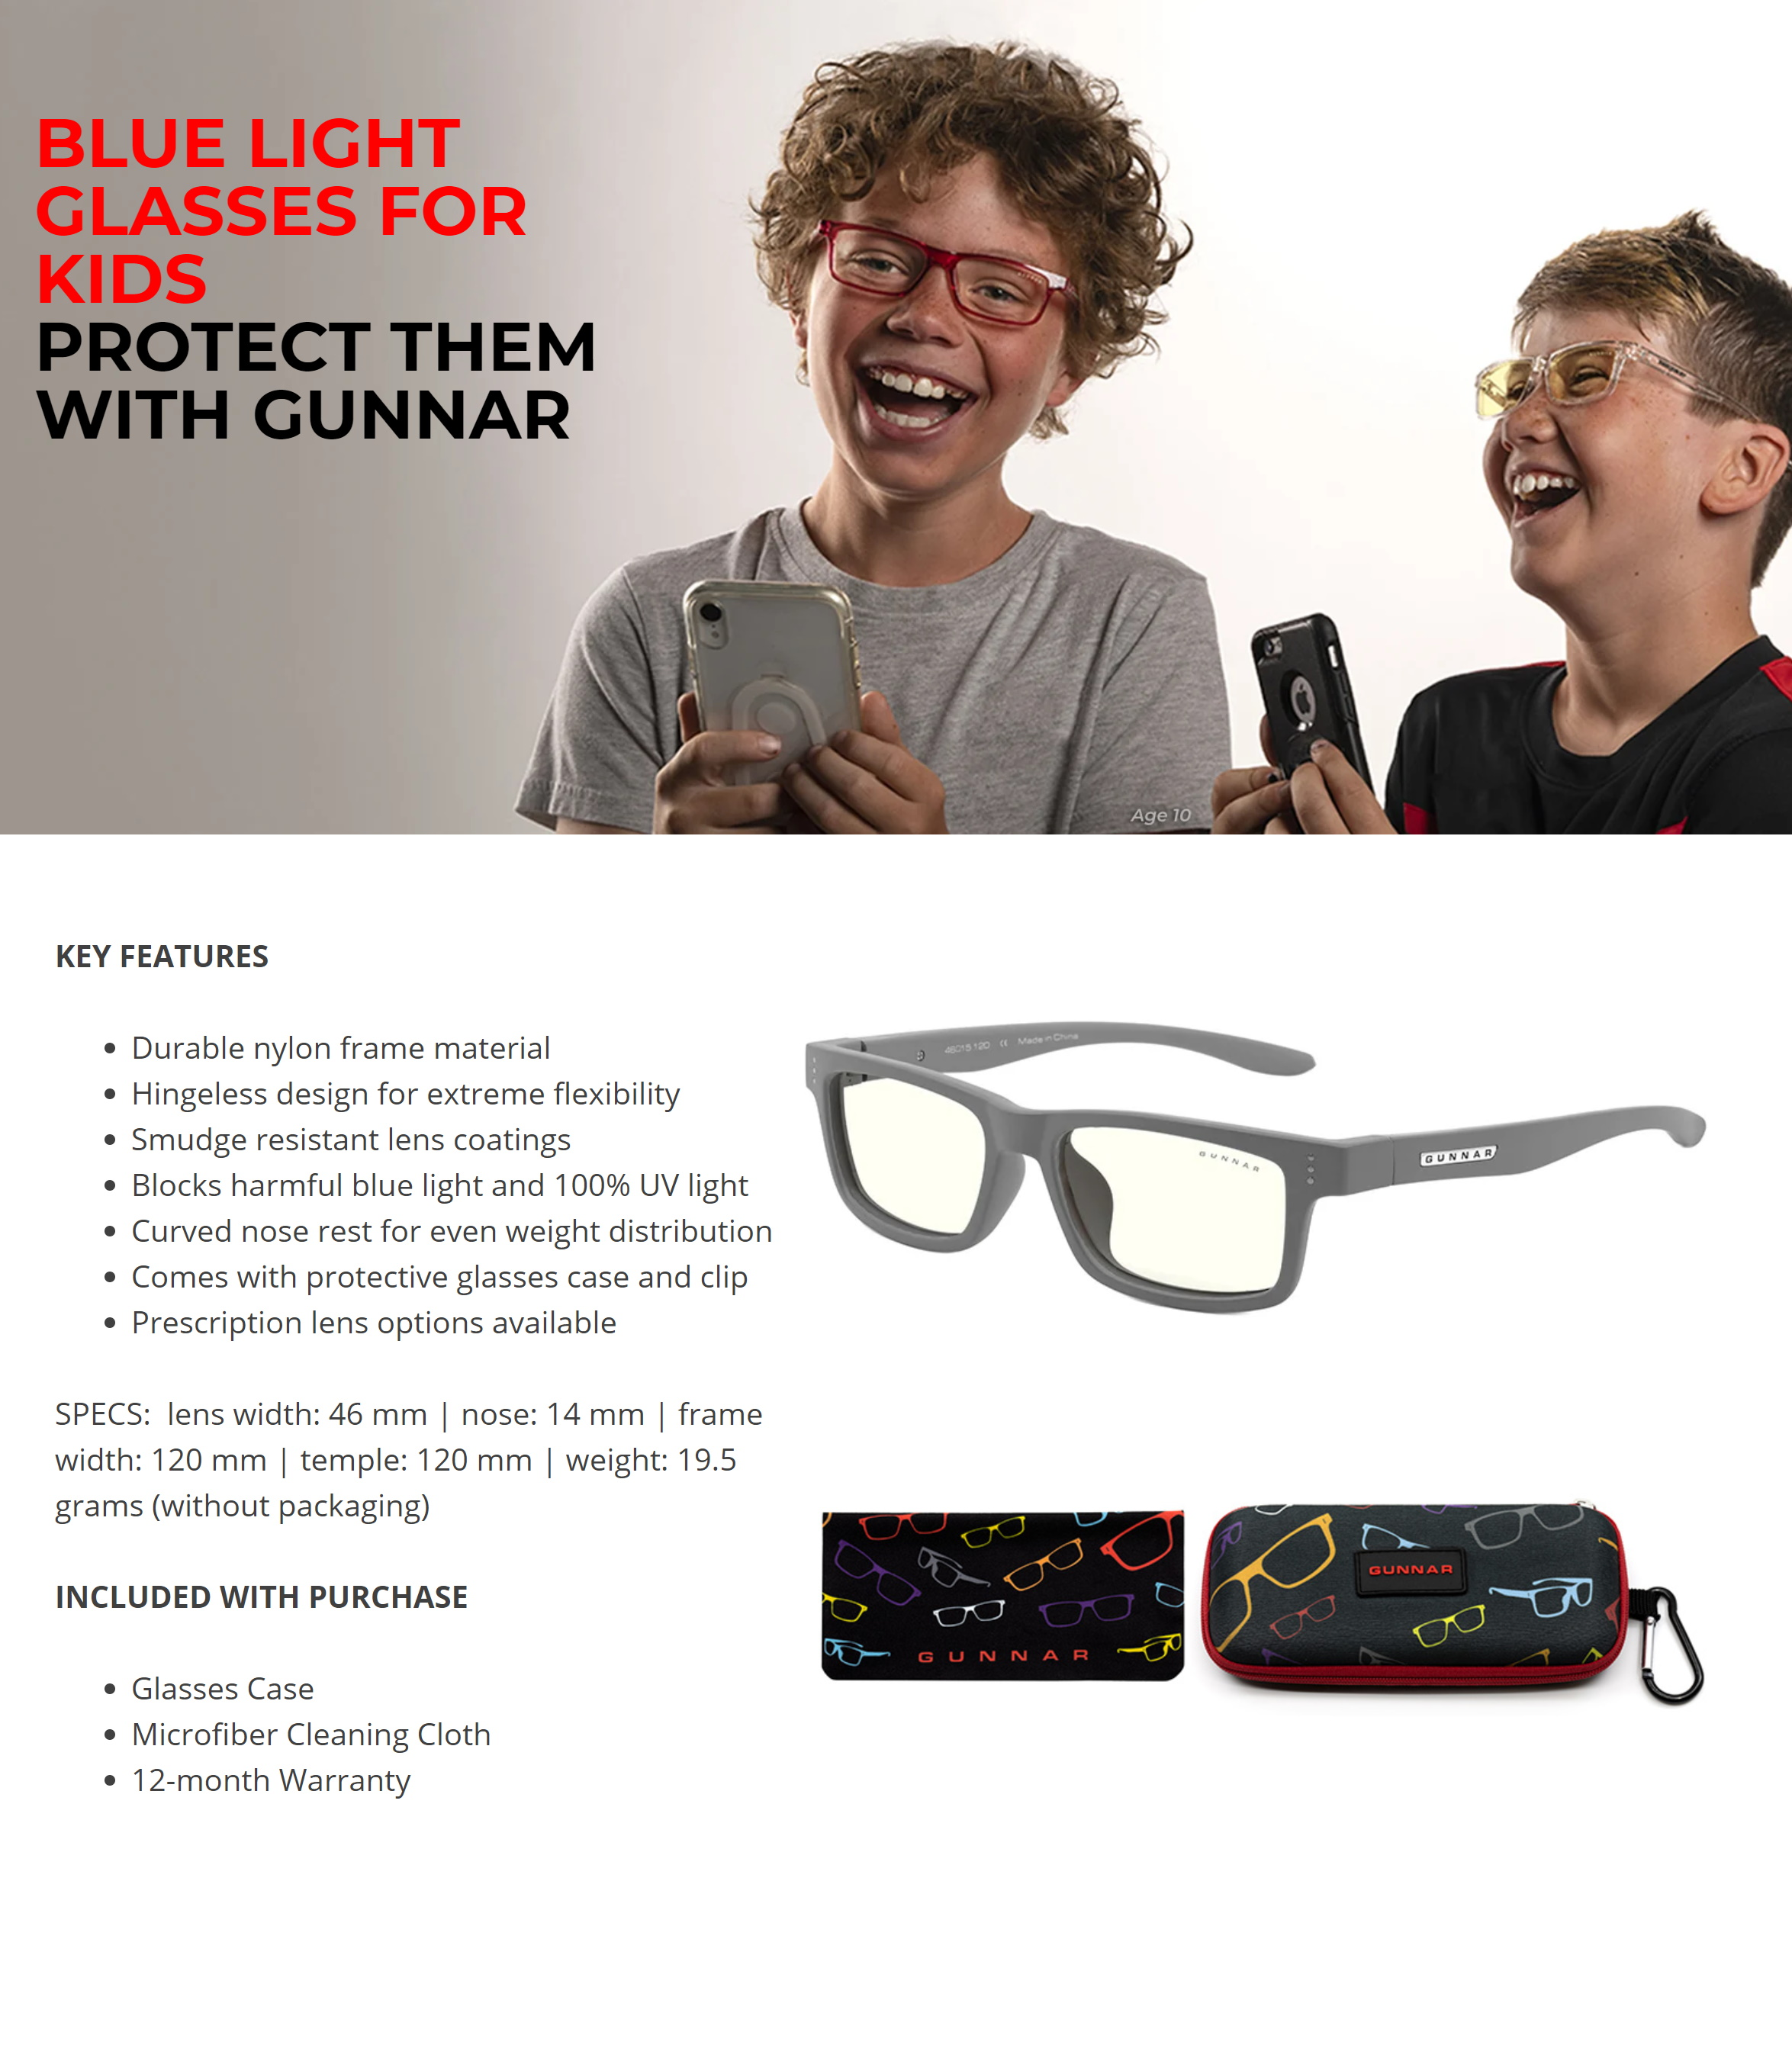 A large marketing image providing additional information about the product Gunnar Cruz Kids Clear Grey Indoor Digital Eyewear Small - Additional alt info not provided